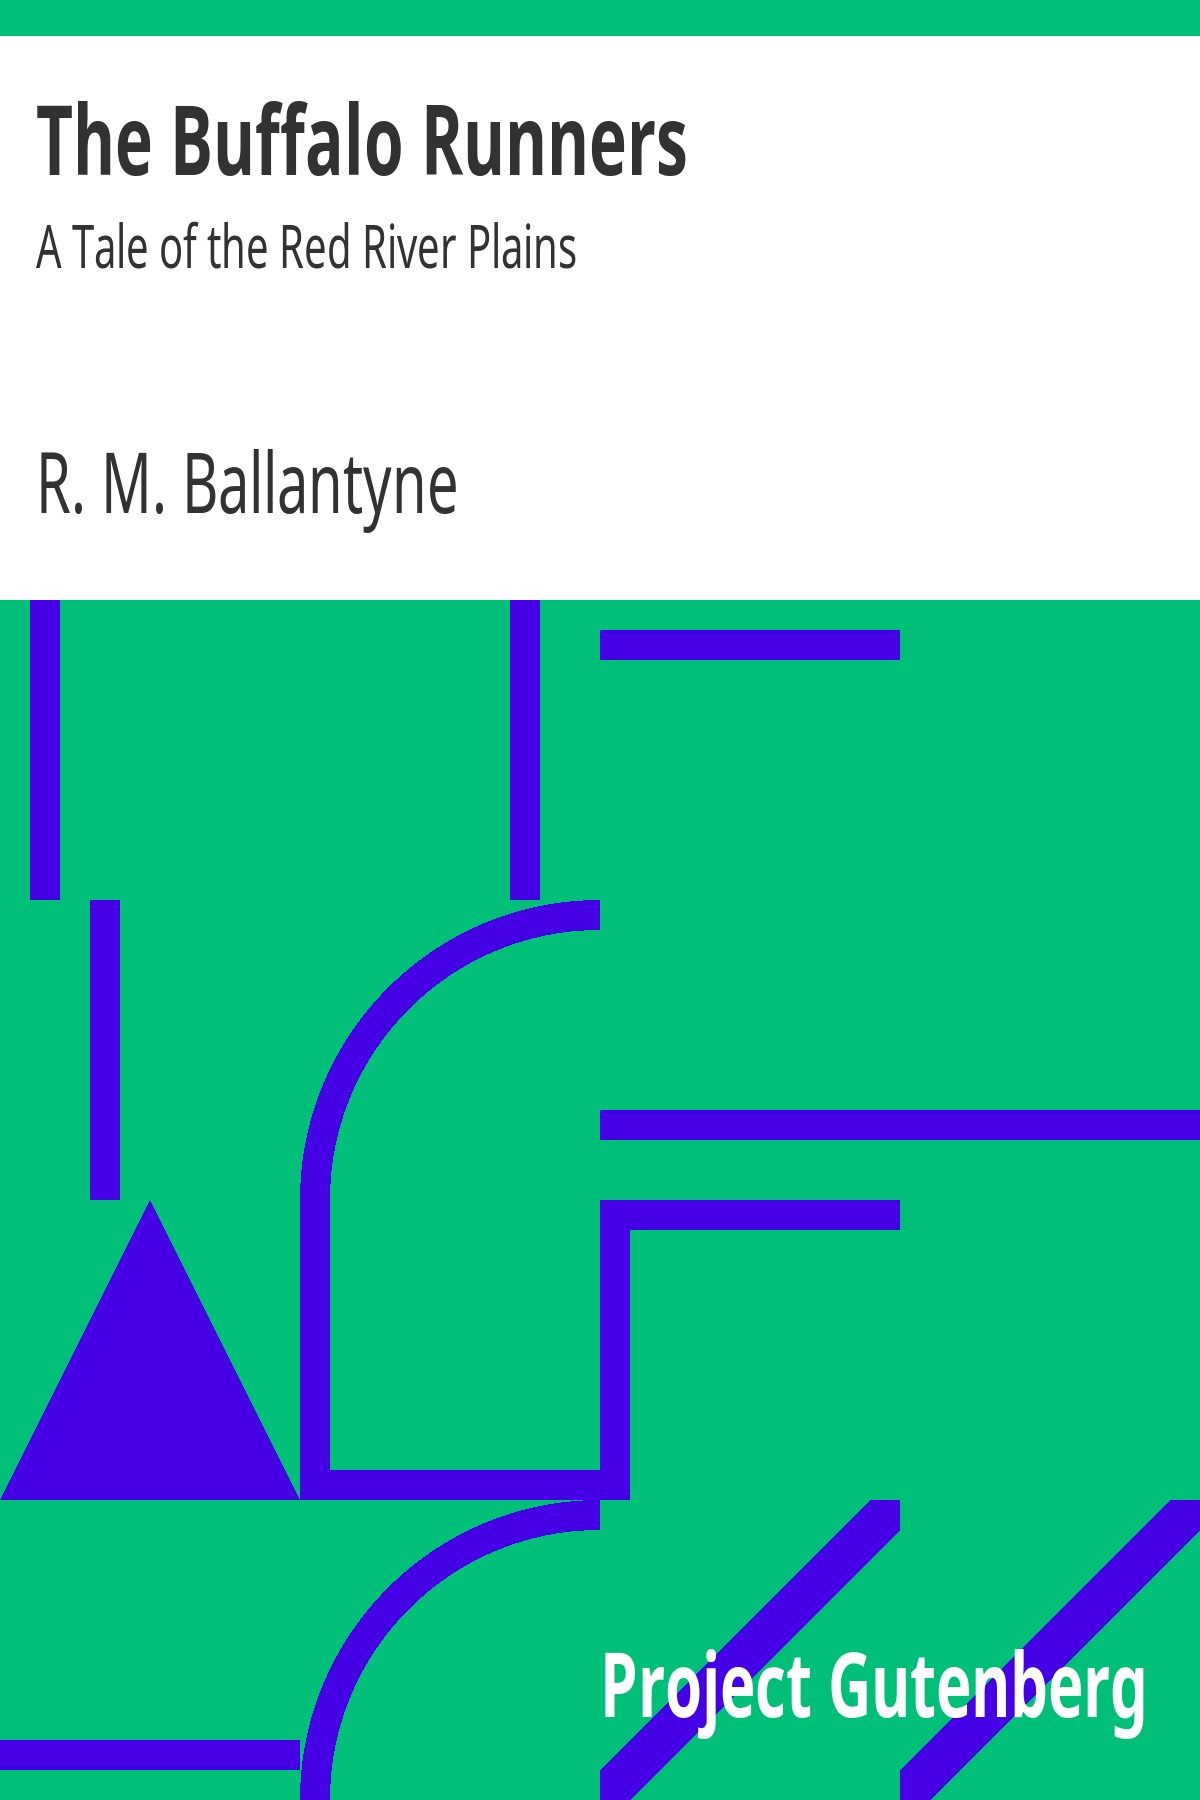 R. M. Ballantyne The Buffalo Runners: A Tale of the Red River Plains